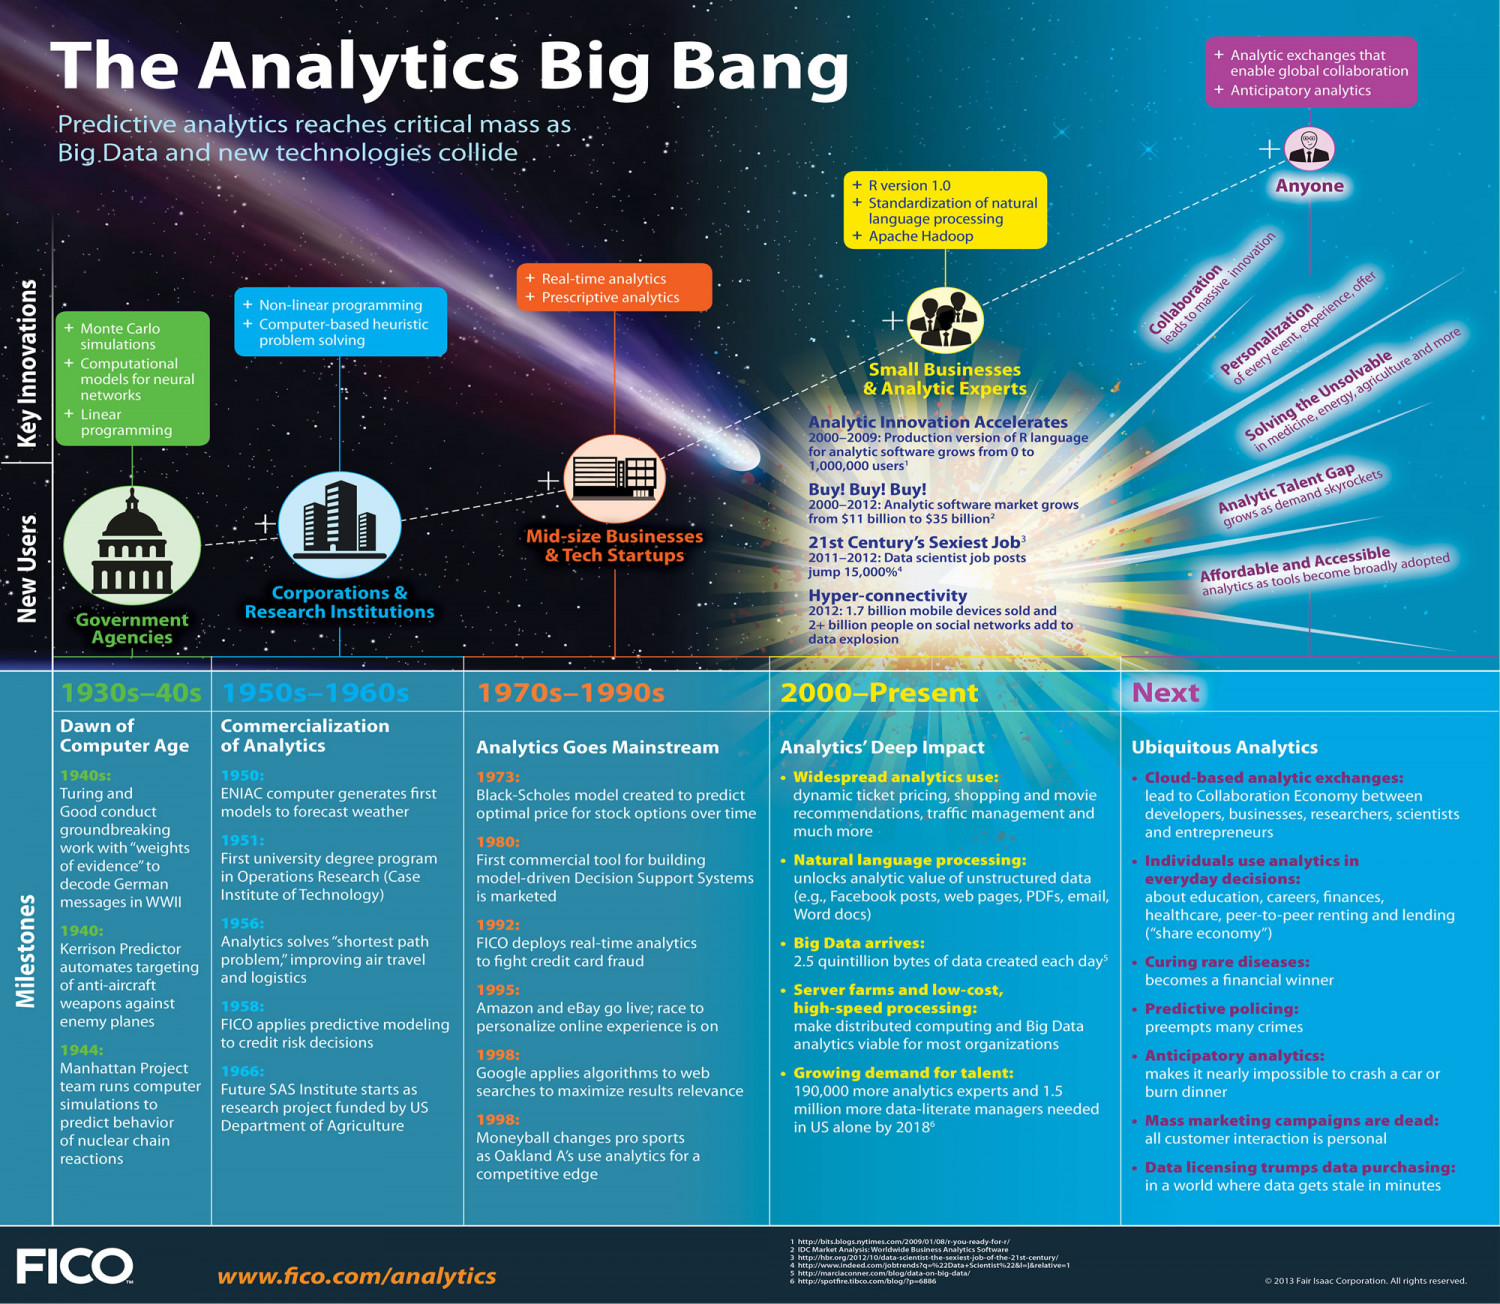 A Look at the History and Future of Predictive Analytics and Big Data Infographic